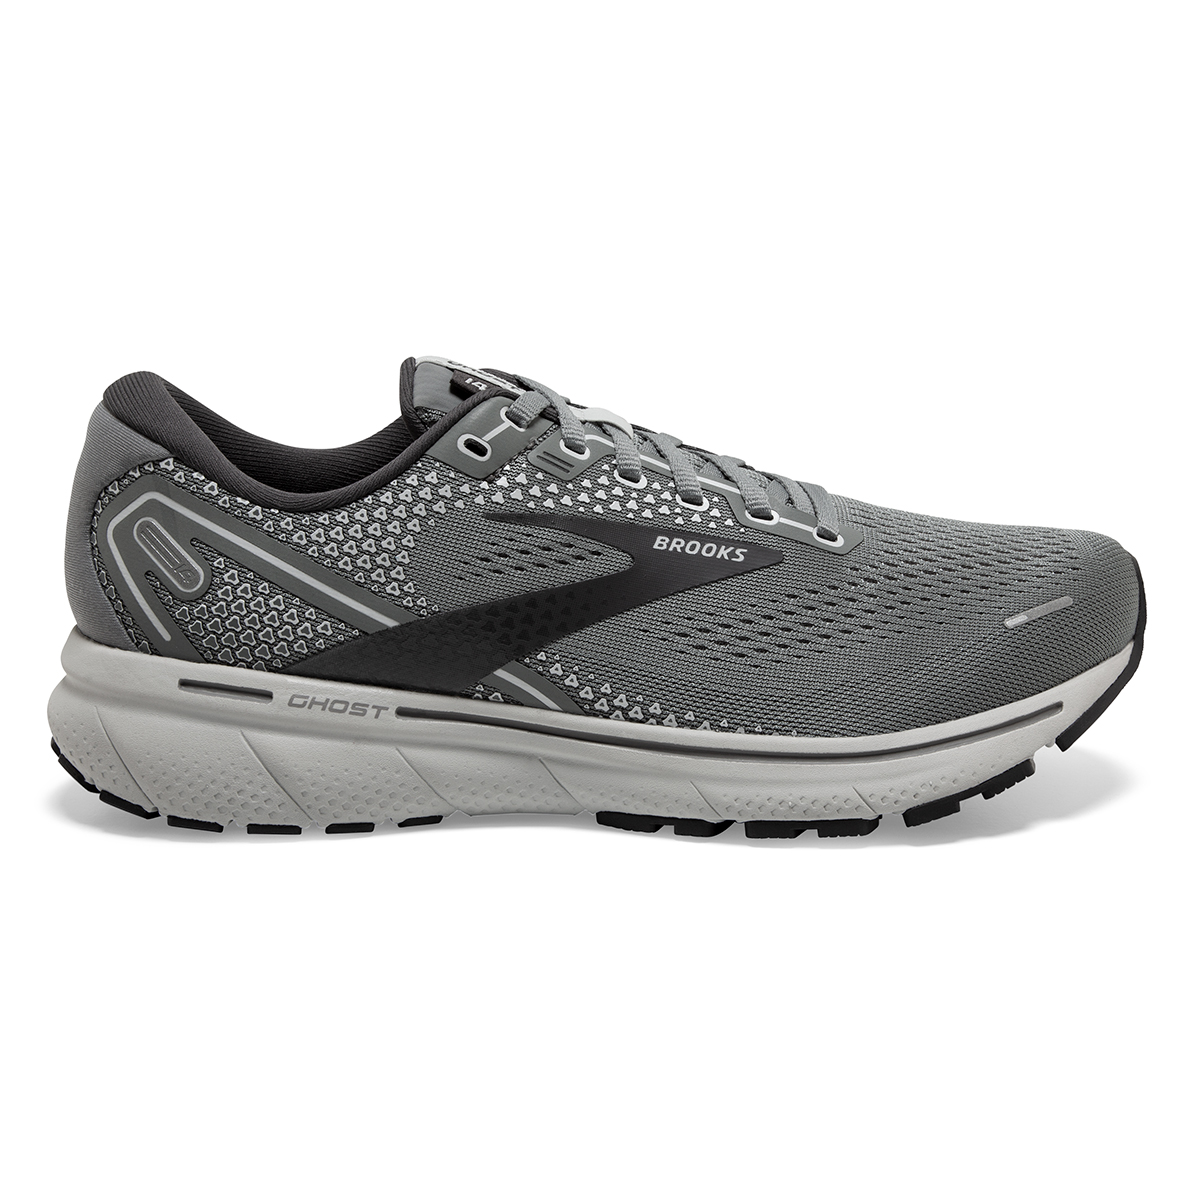 Men's Brooks Ghost 14 Running Shoe - Color: Grey/Alloy/Oyster - Size: 8 - Width: Extra Wide, Grey/Alloy/Oyster, large, image 1